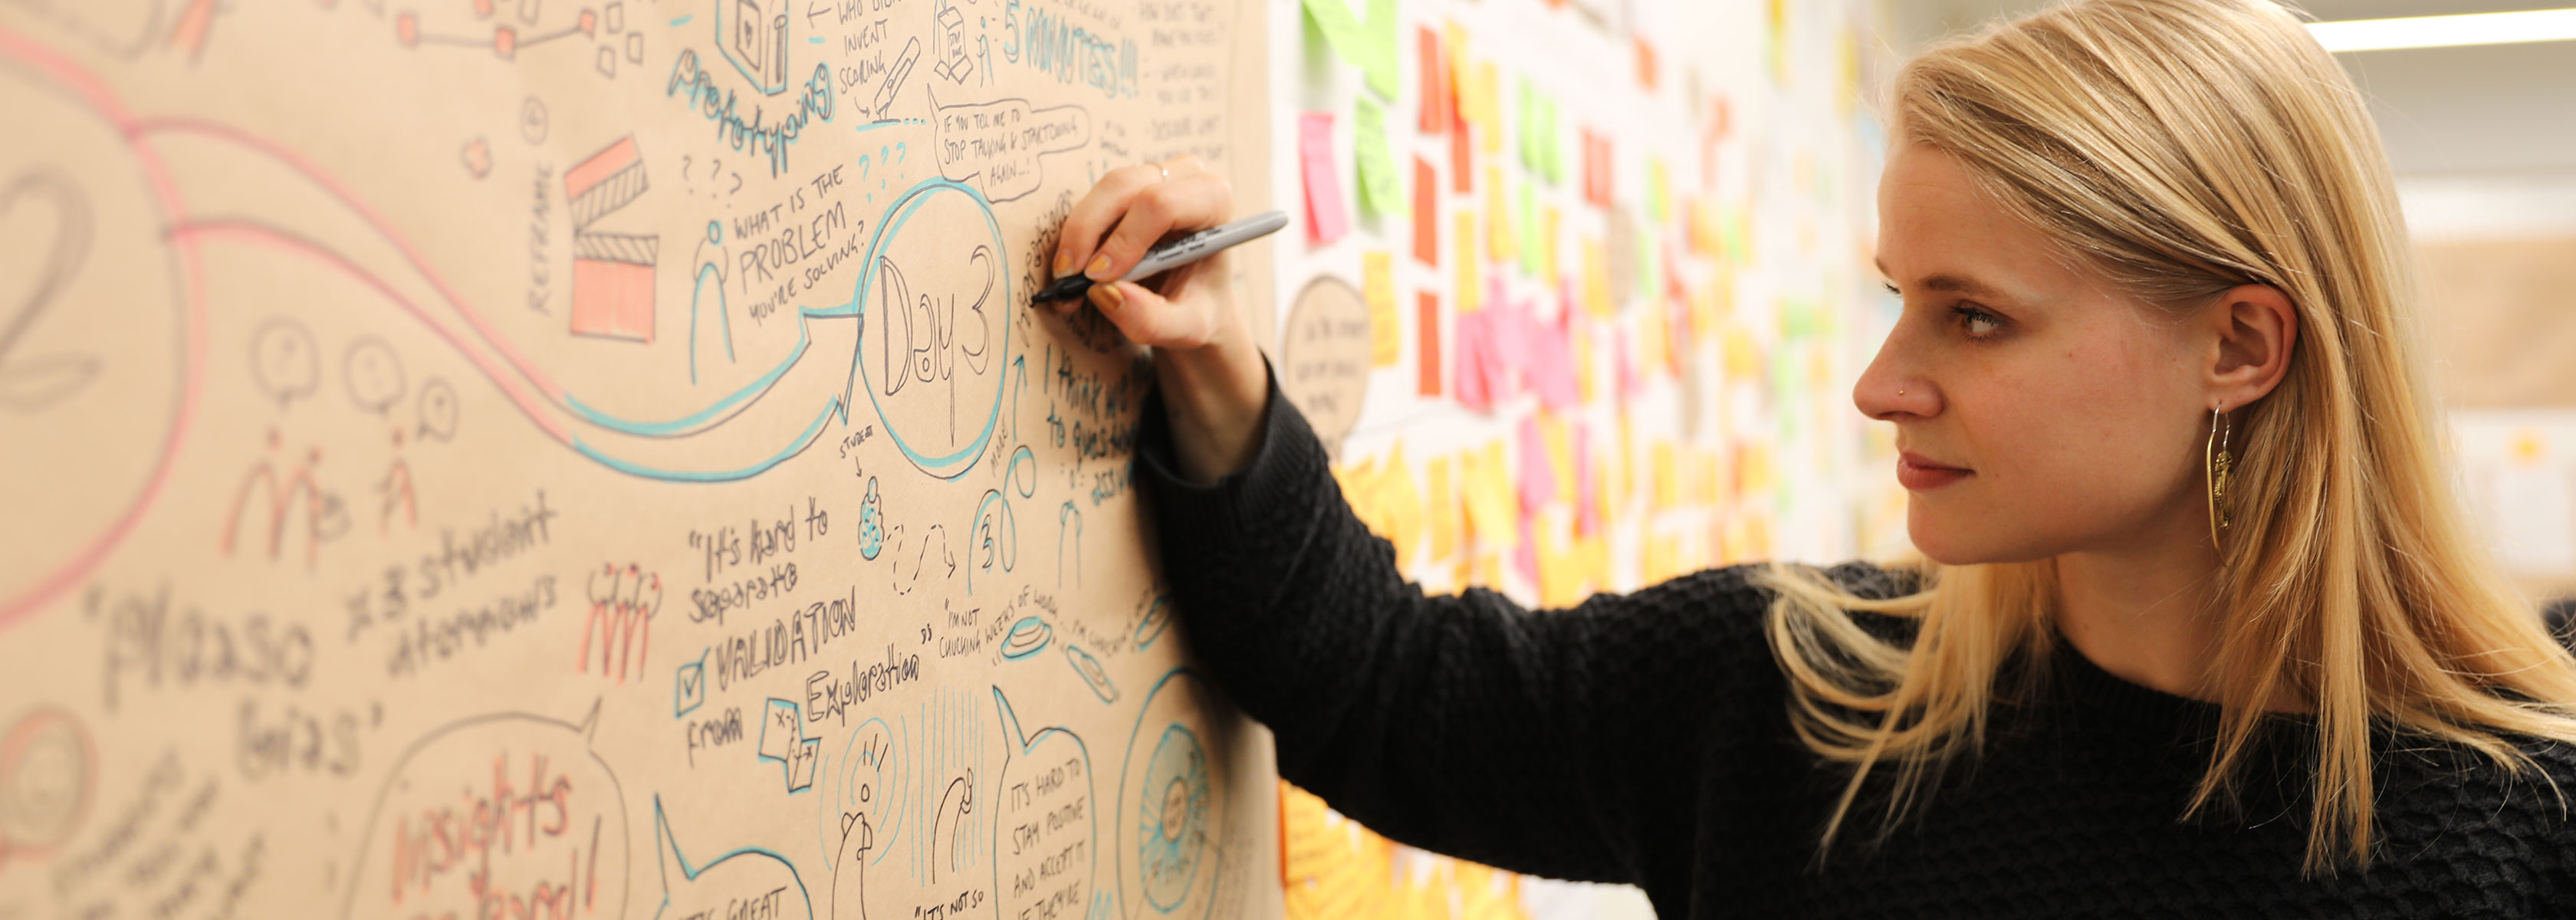 A woman drawing a graphic recording style illustration on a wall.